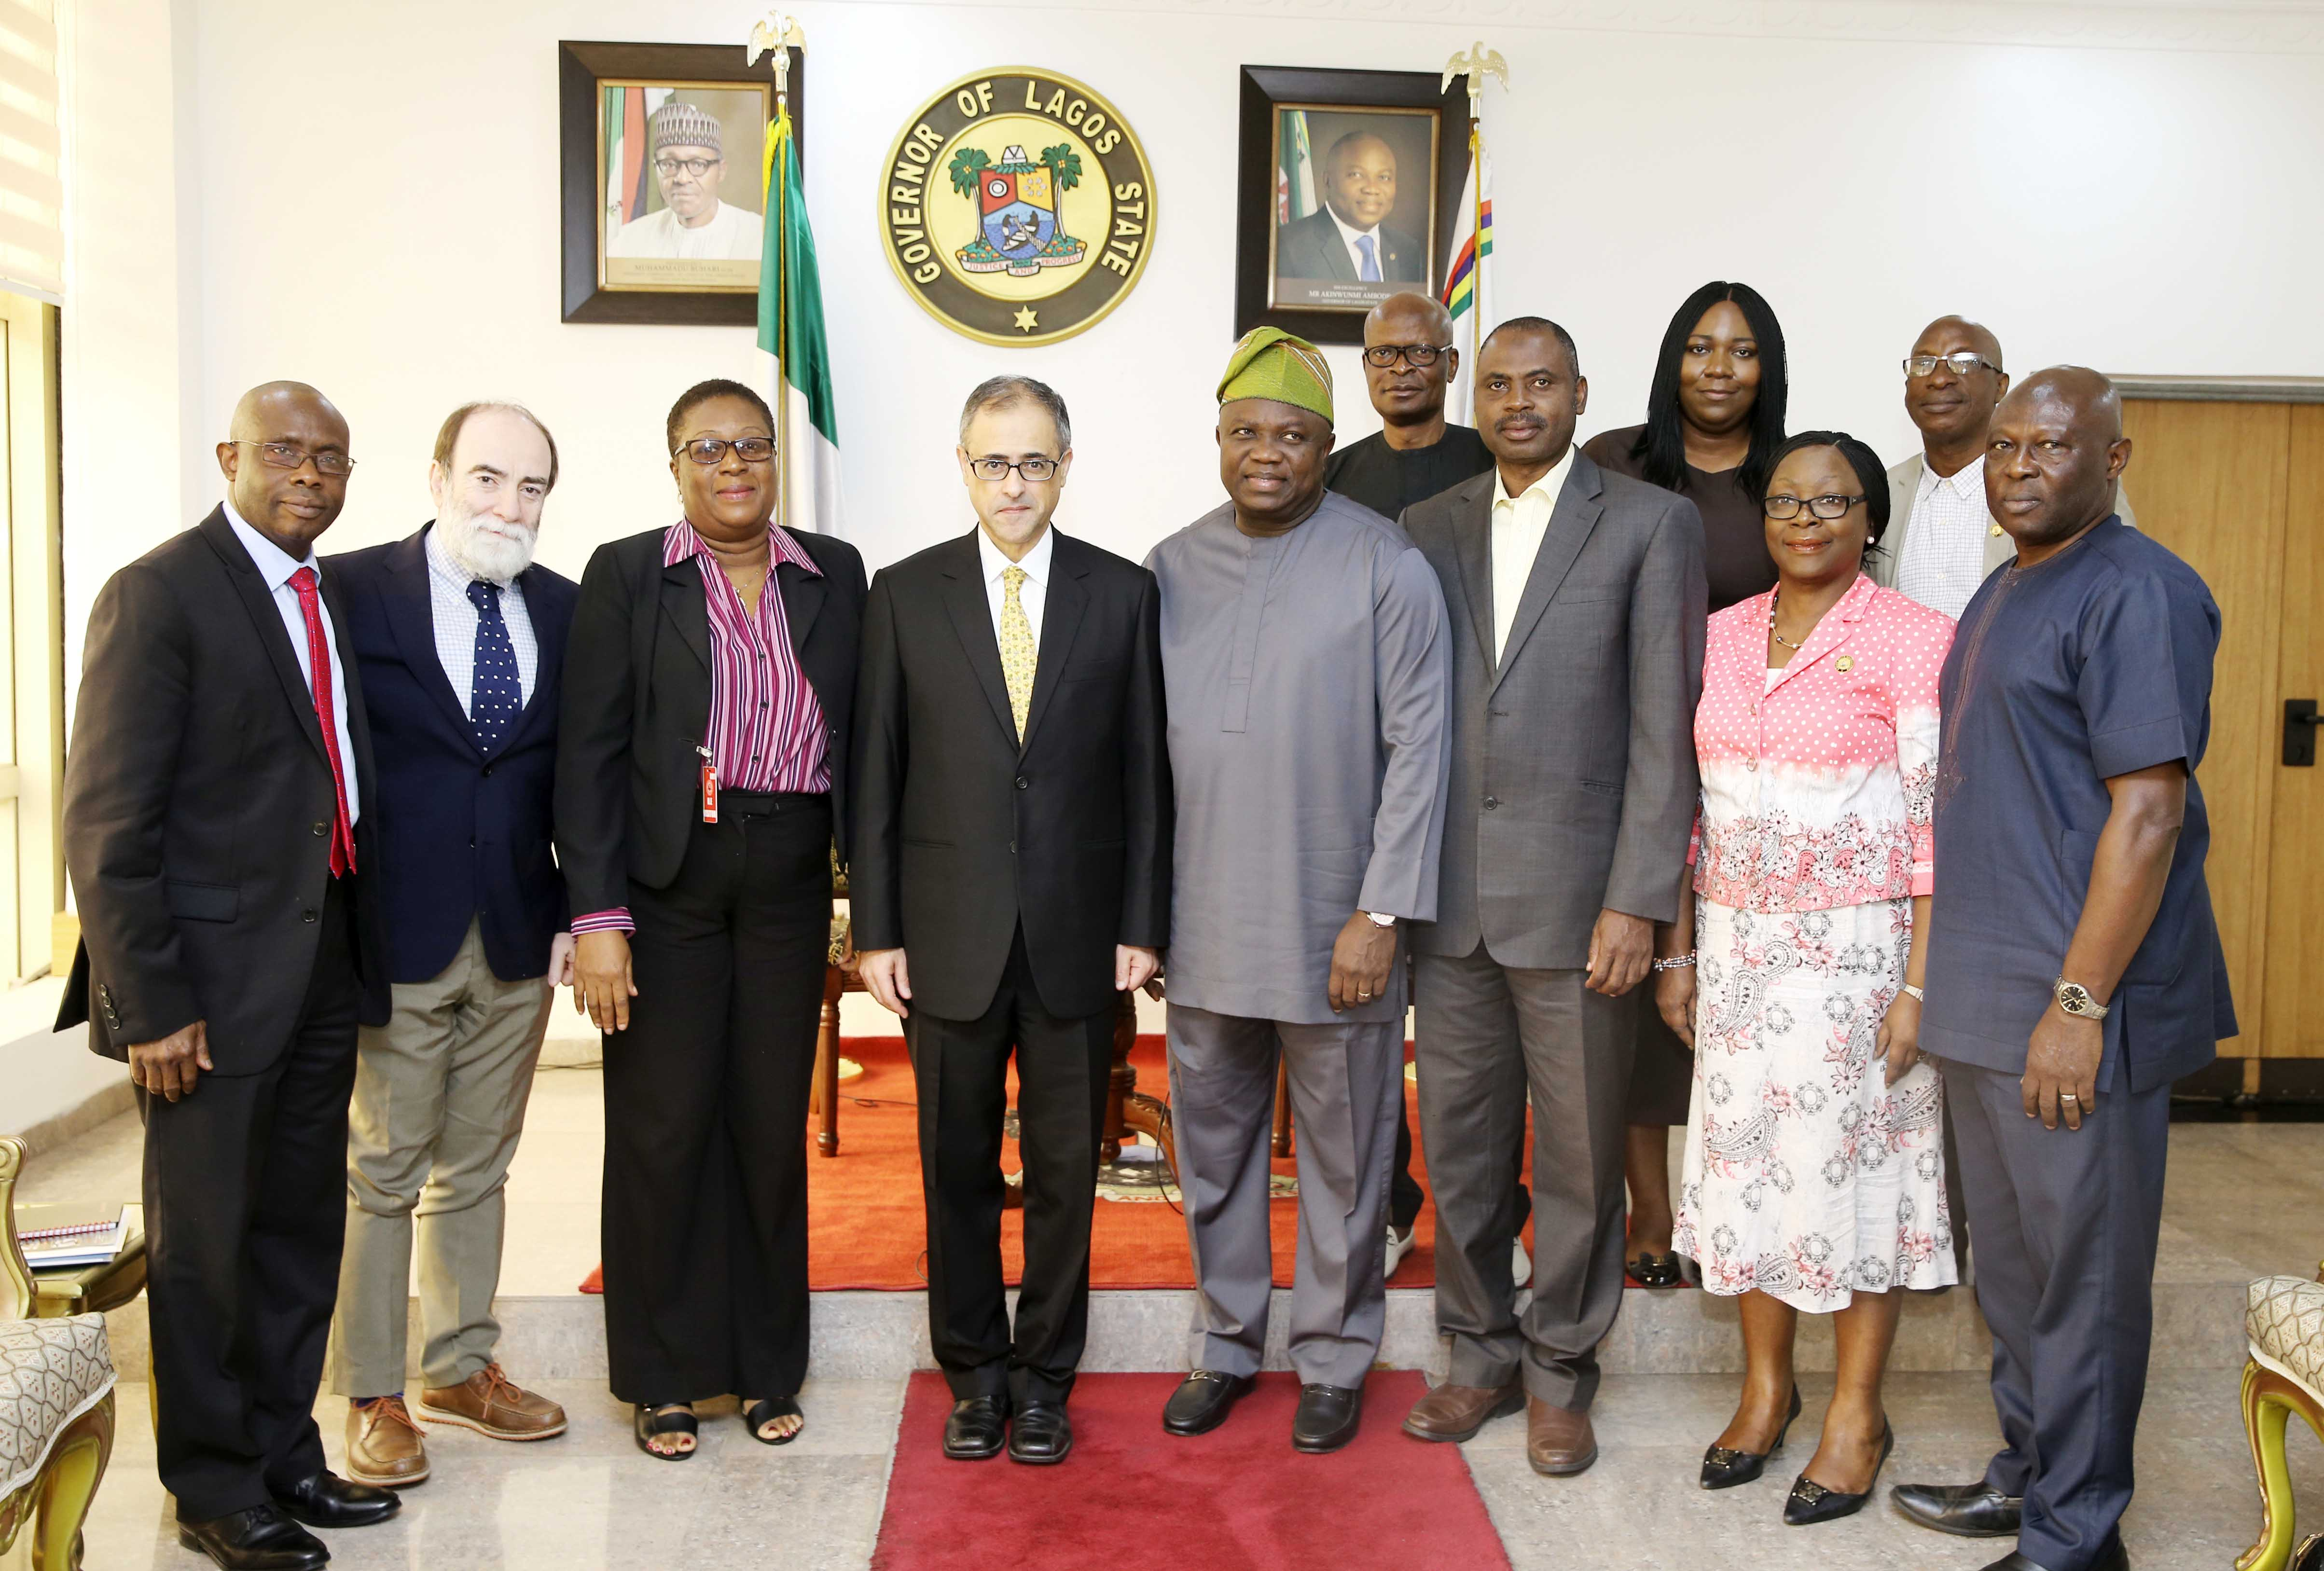 Lagos State Governor, Mr. Akinwunmi Ambode (middle); Country Director, World Bank, Mr. Rachid Benmessaoud (3rd left); Senior Operations Specialist, World Bank, Mrs. Ngozi Udolisa (2nd left); Lead Urban Specialist, South Africa, Dr. Sateh El-Arnaout (left); Commissioner for Water Infrastructure Development, Engr. Ade Akinsanya (right); Head of Service, Mrs. Olabowale Ademola (2nd right); Senior Transport Specialist, World Bank, Engr. Tunji Ahmed (3rd right) and Special Adviser to the Governor on Audit & Finance, Mr. Adeniyi Popoola (right behind) during the courtesy visit to the Governor at the Lagos House, Ikeja, on Thursday, July 13, 2017.